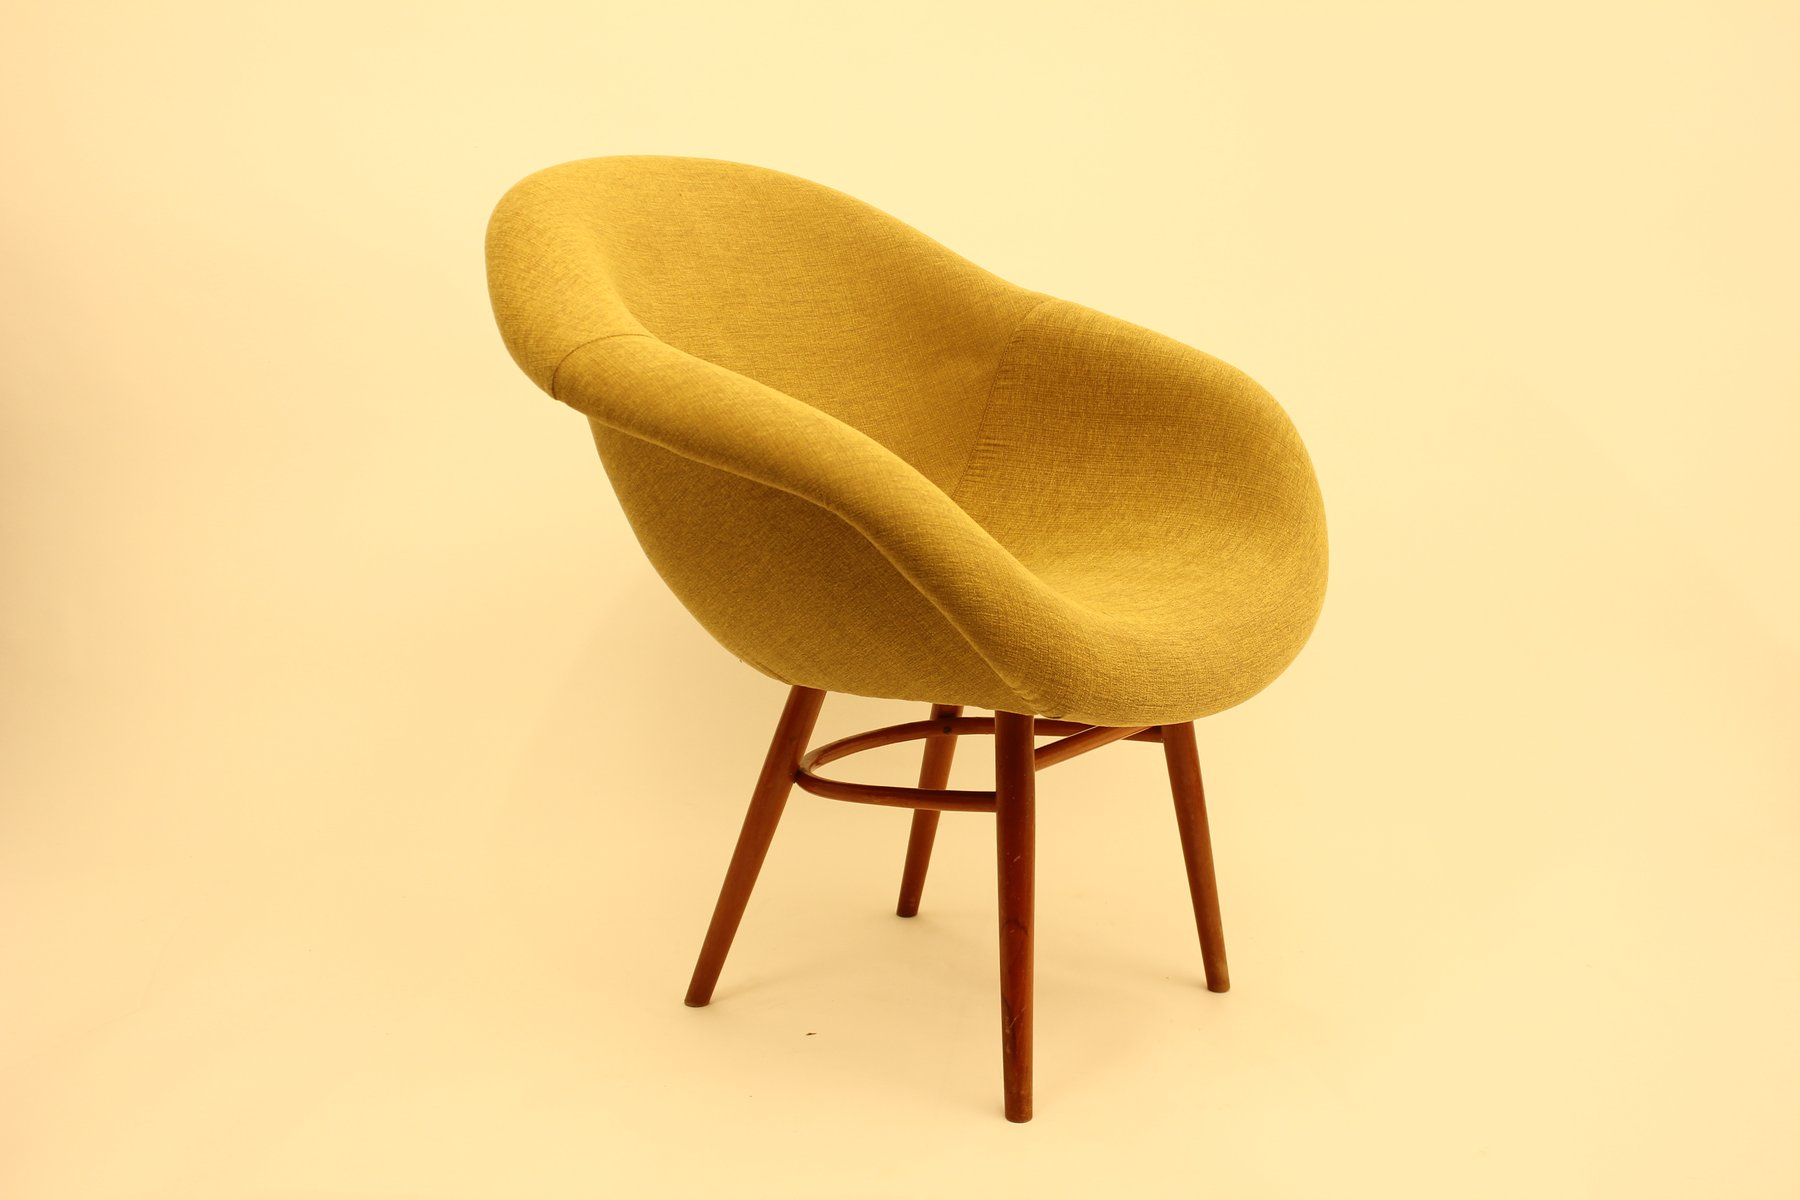 fiberglass shell chairs. fiberglass shell chair, 1960s chairs